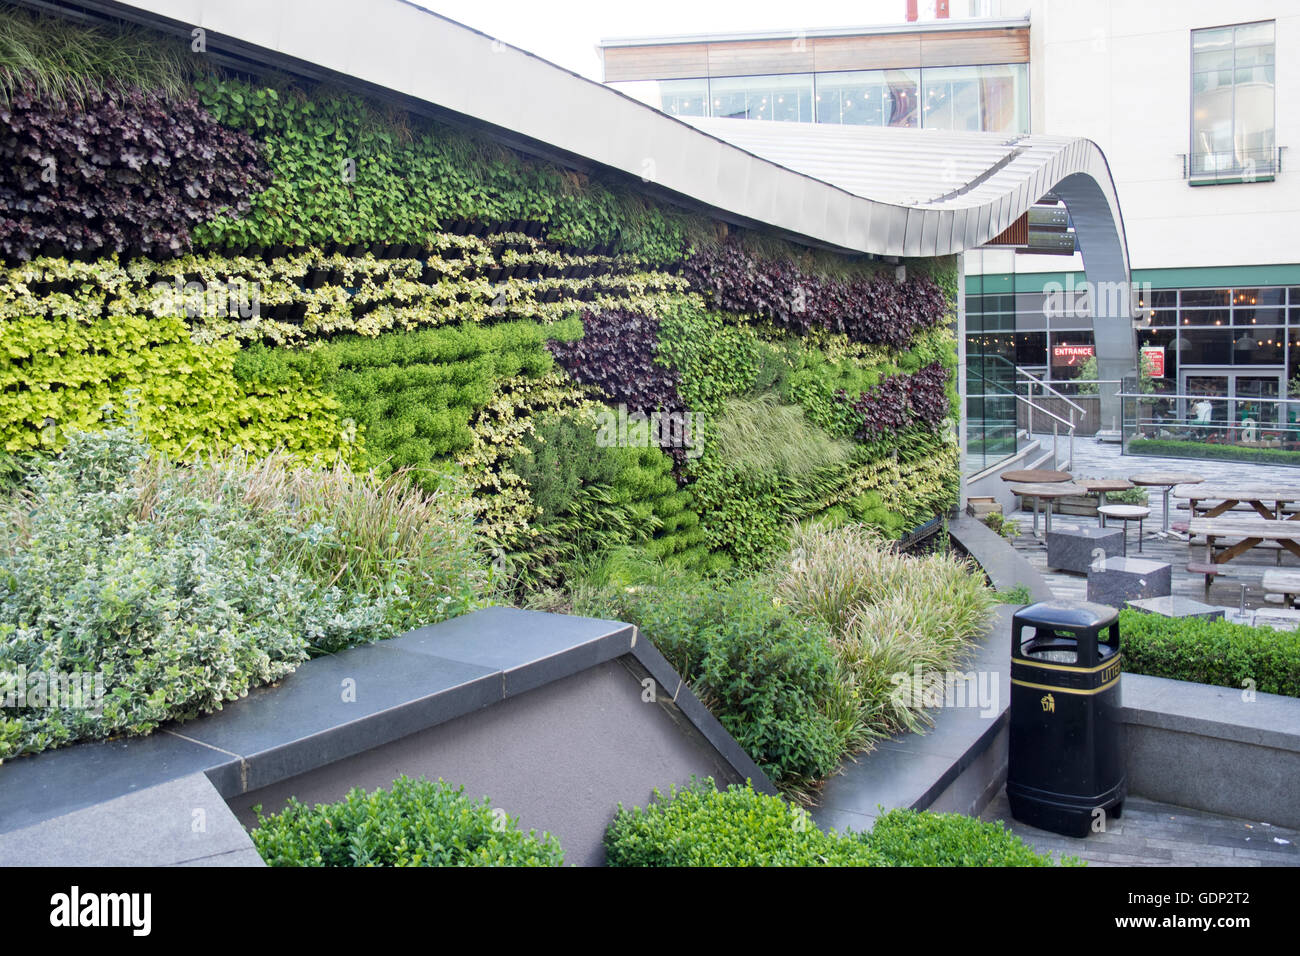 A Vertical Garden Of Vines And Hedges.   Stock Image